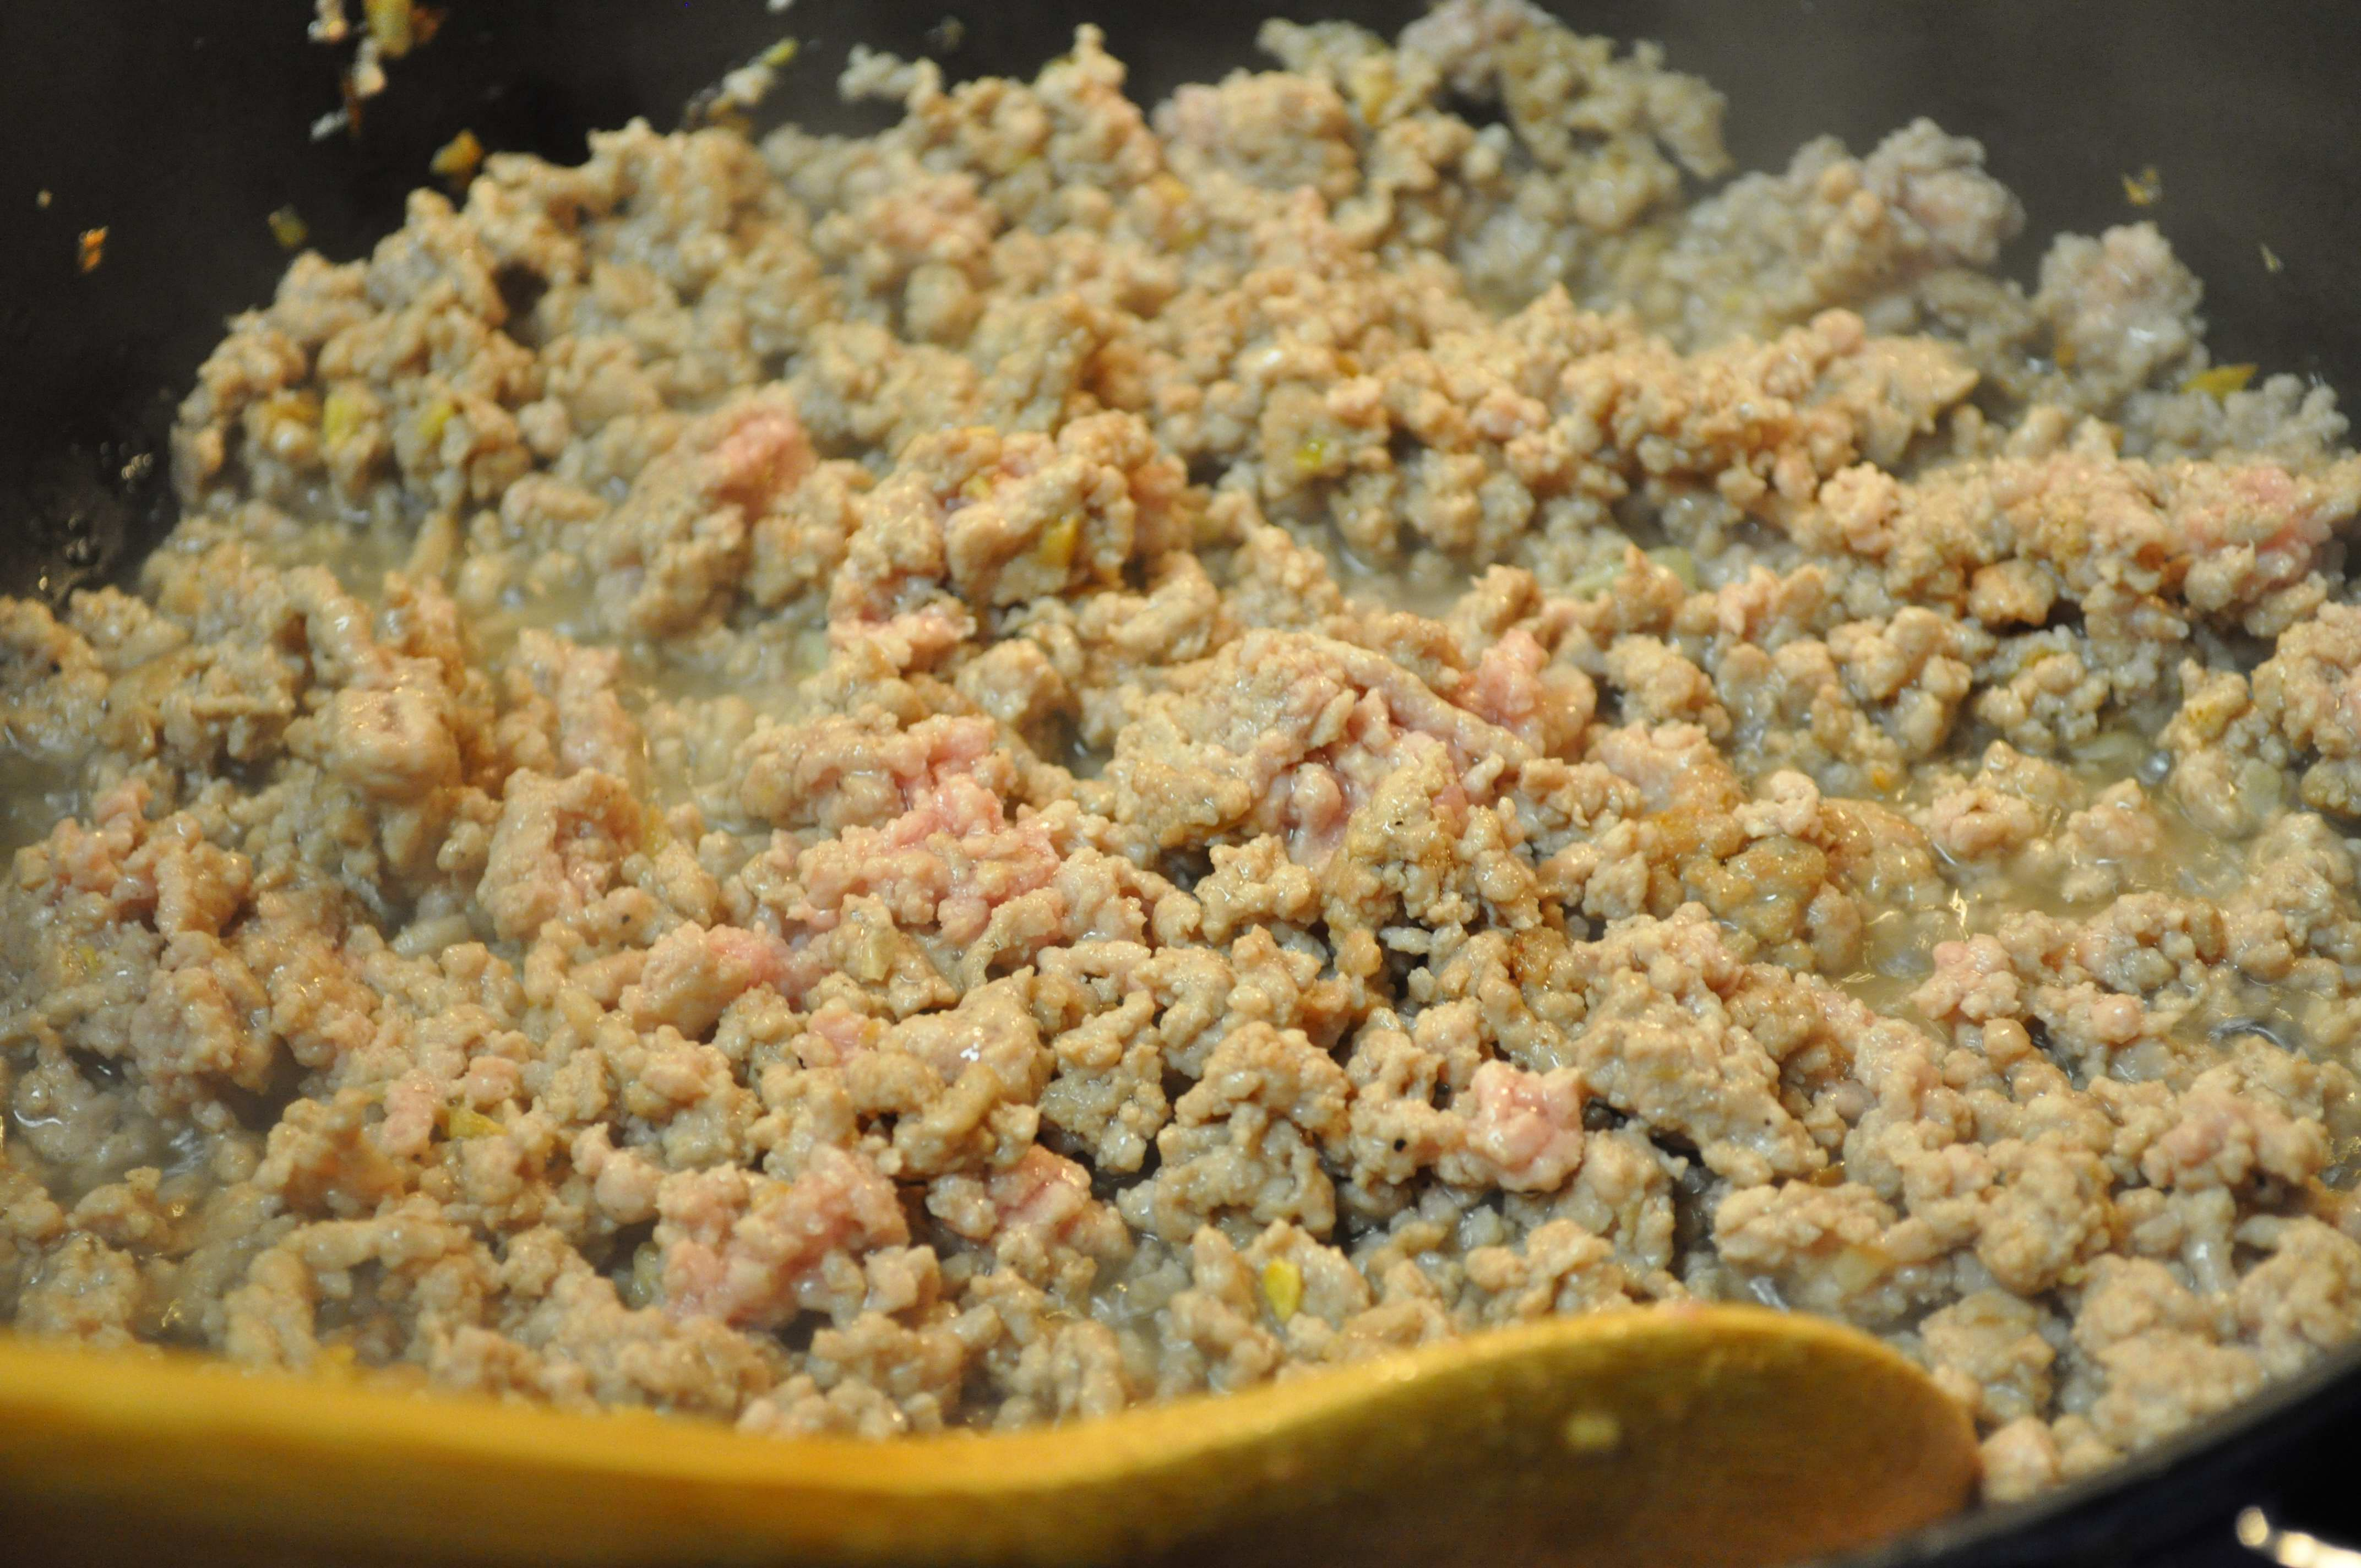 Cooked Ground Pork